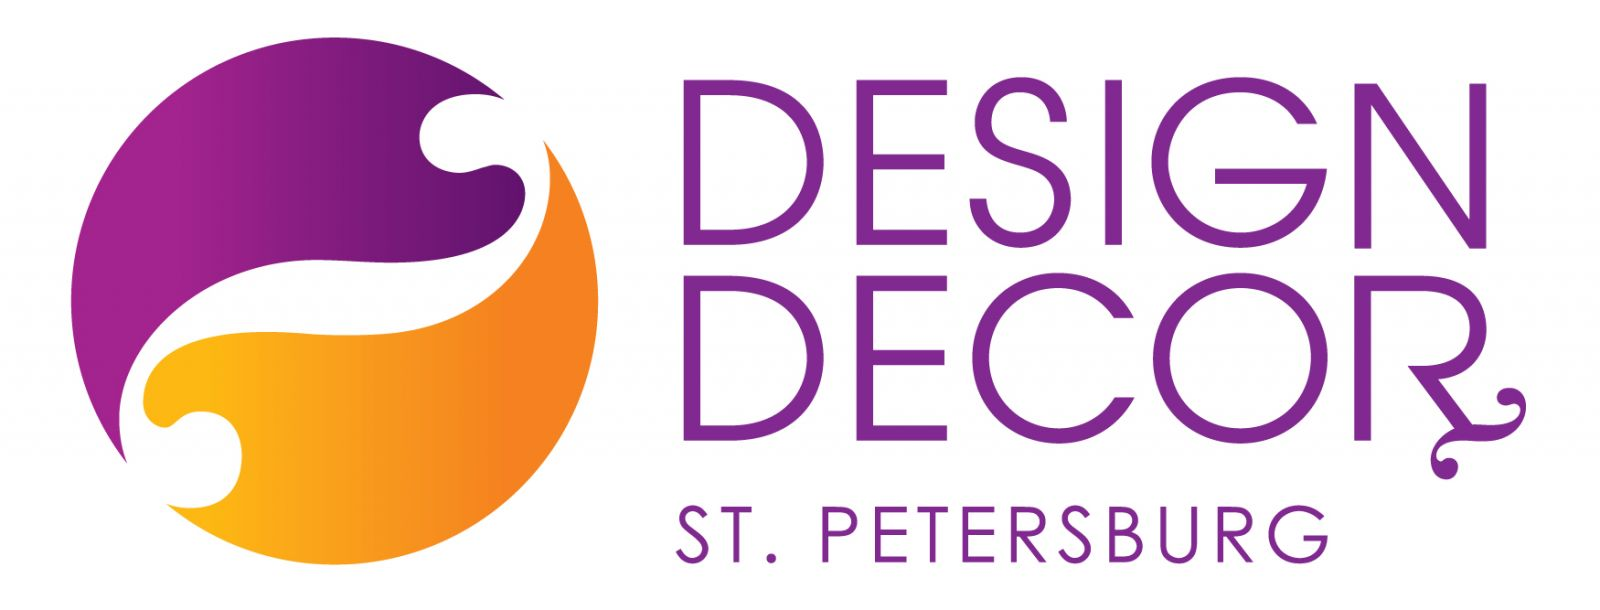 5-Я ЮБИЛЕЙНАЯ ВЫСТАВКА DESIGN&DECOR ST. PETERSBURG